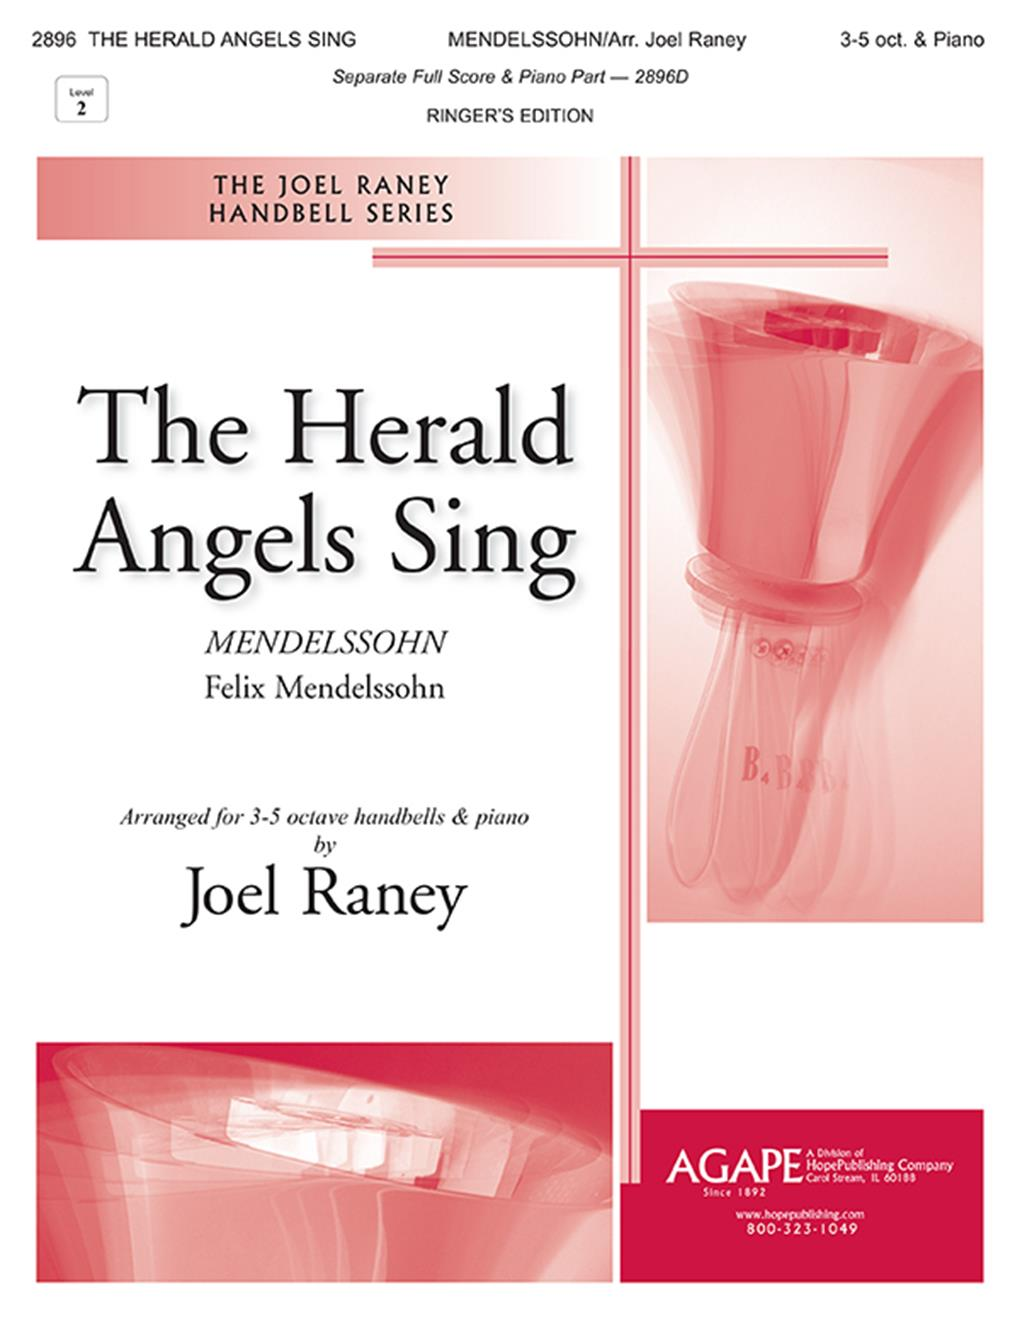 Herald Angels Sing The - 3-5 Oct. Cover Image